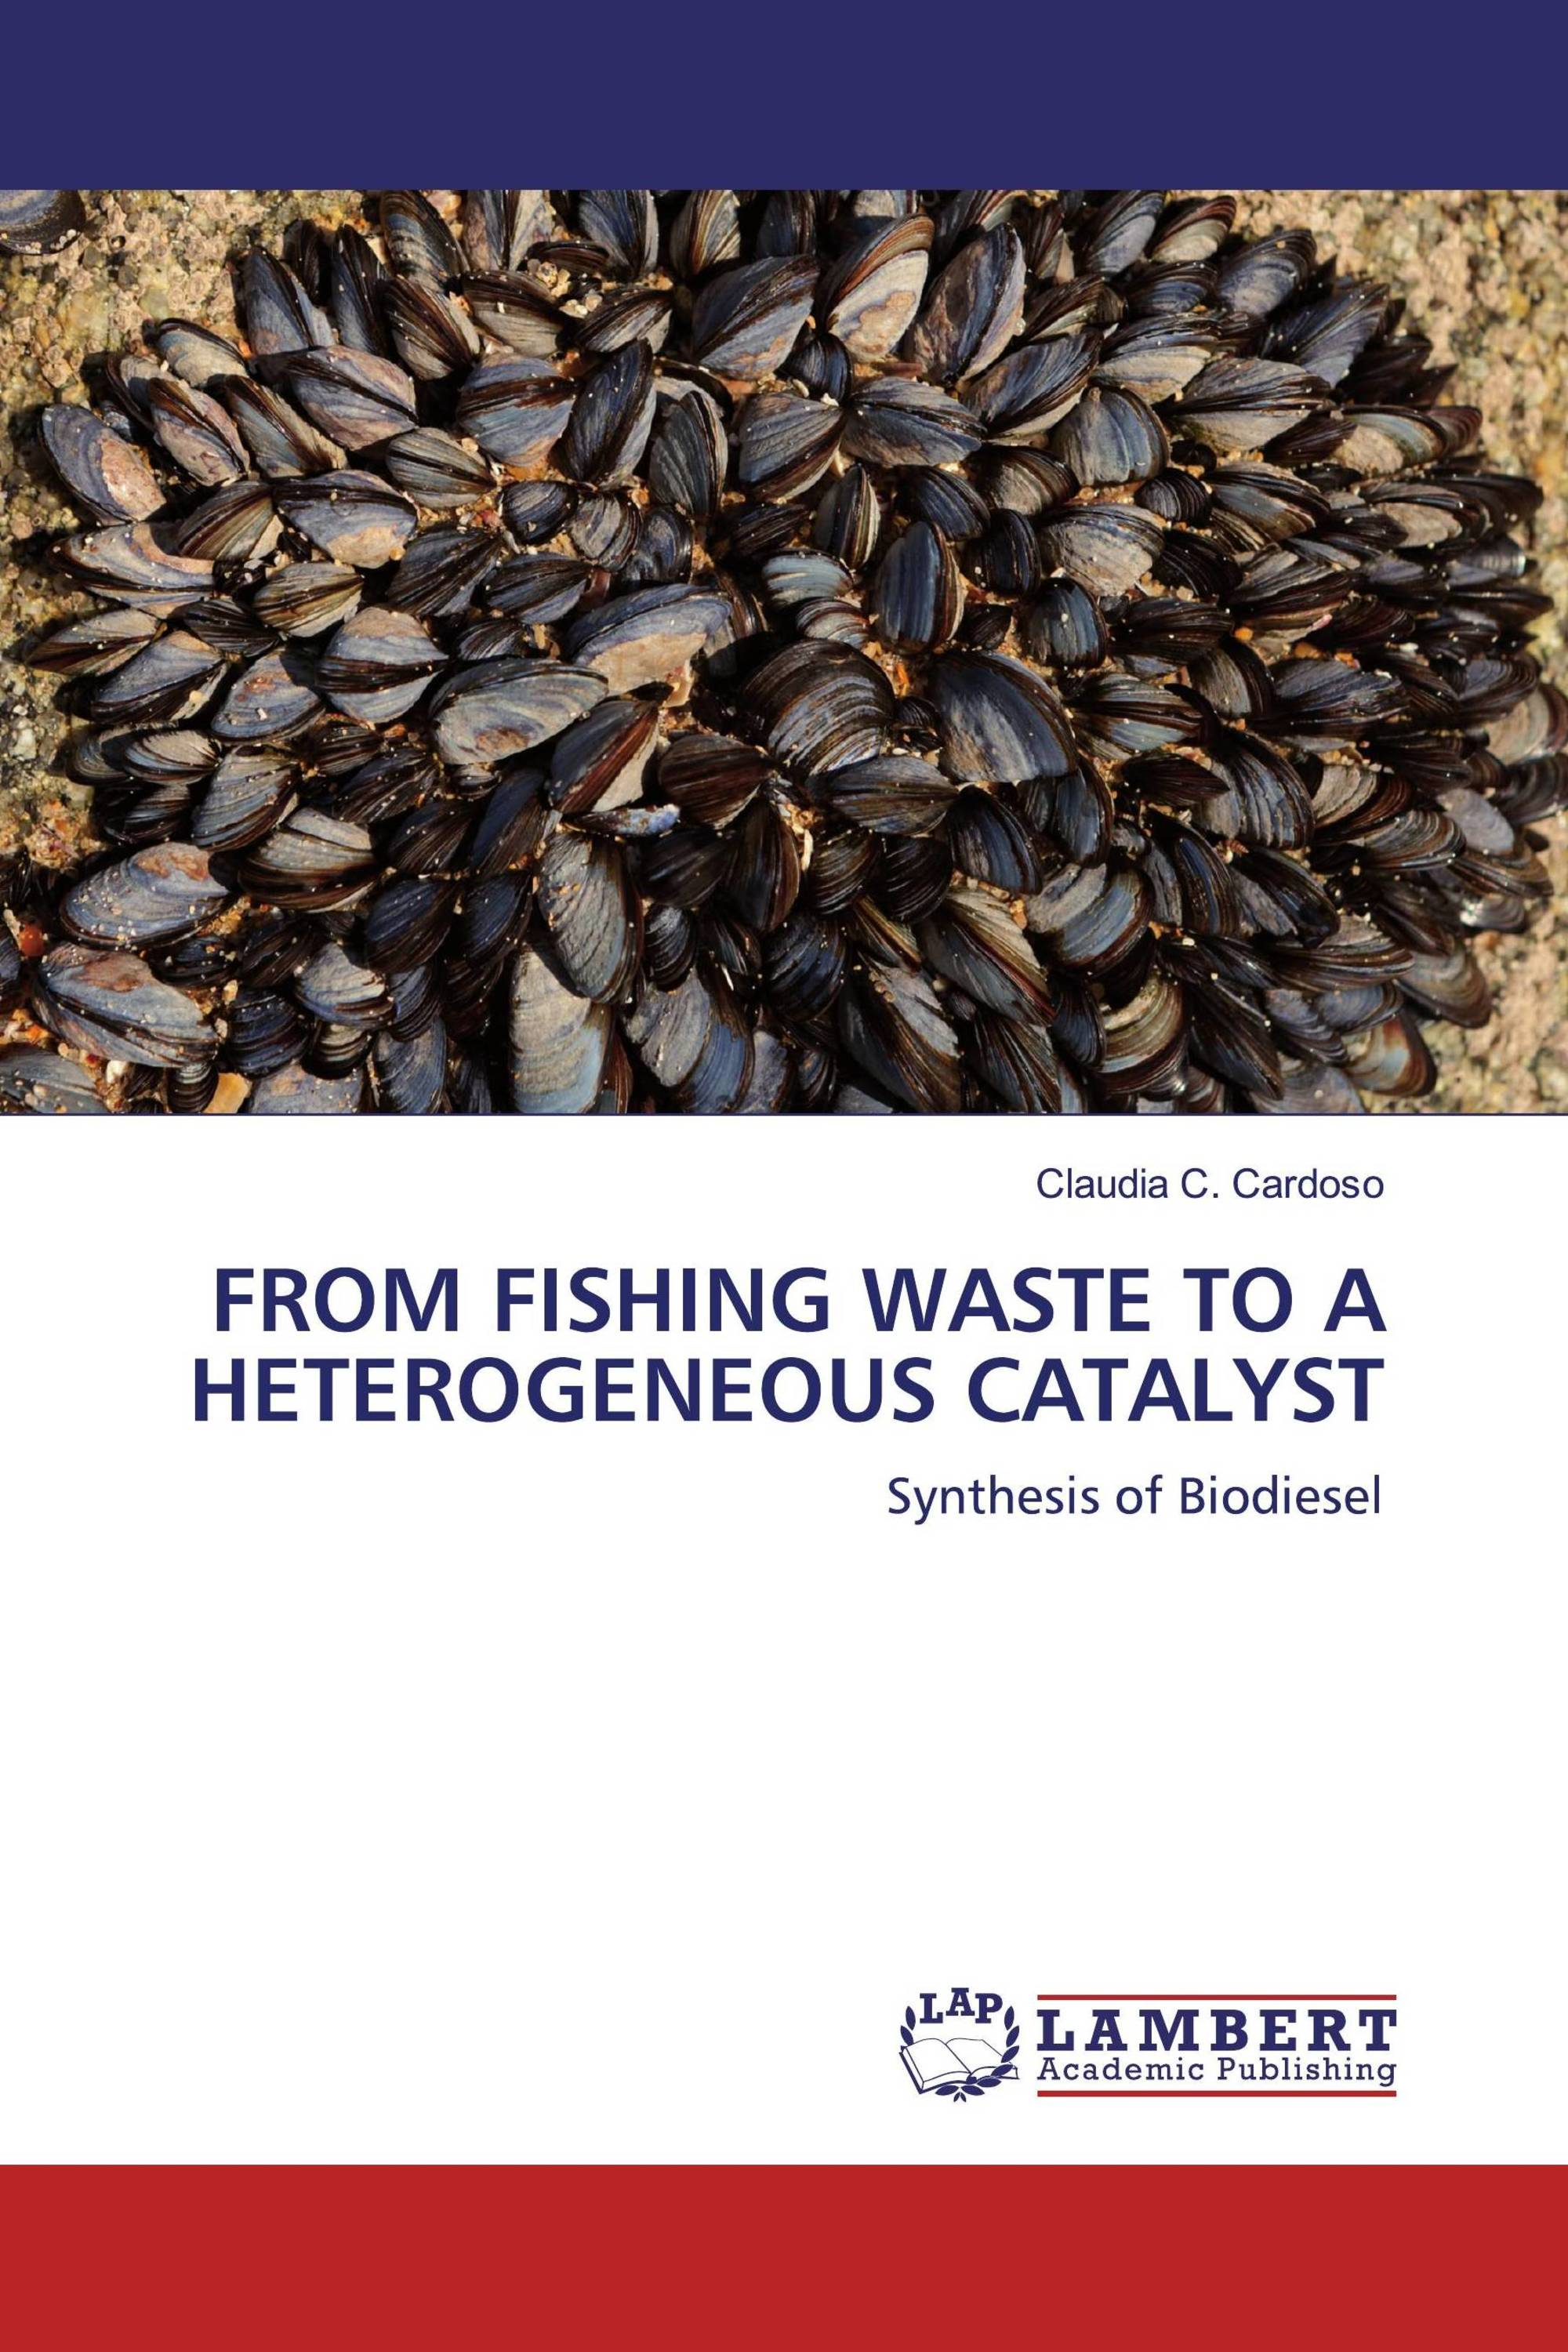 FROM FISHING WASTE TO A HETEROGENEOUS CATALYST